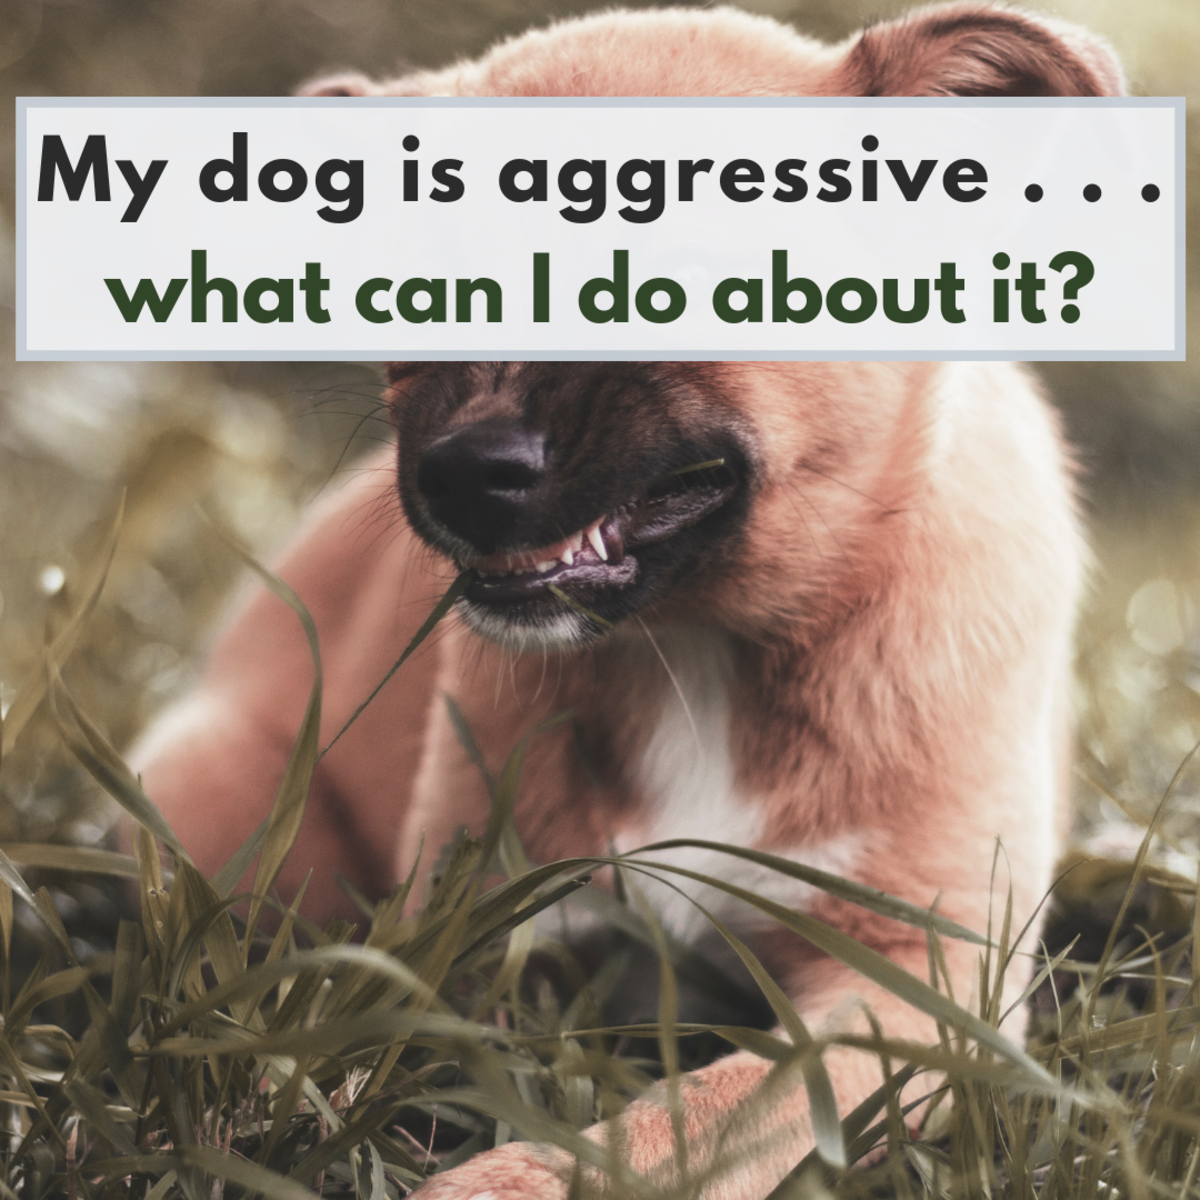 Territorial dogs can be a big liability. Find out how to curb territorial aggression.